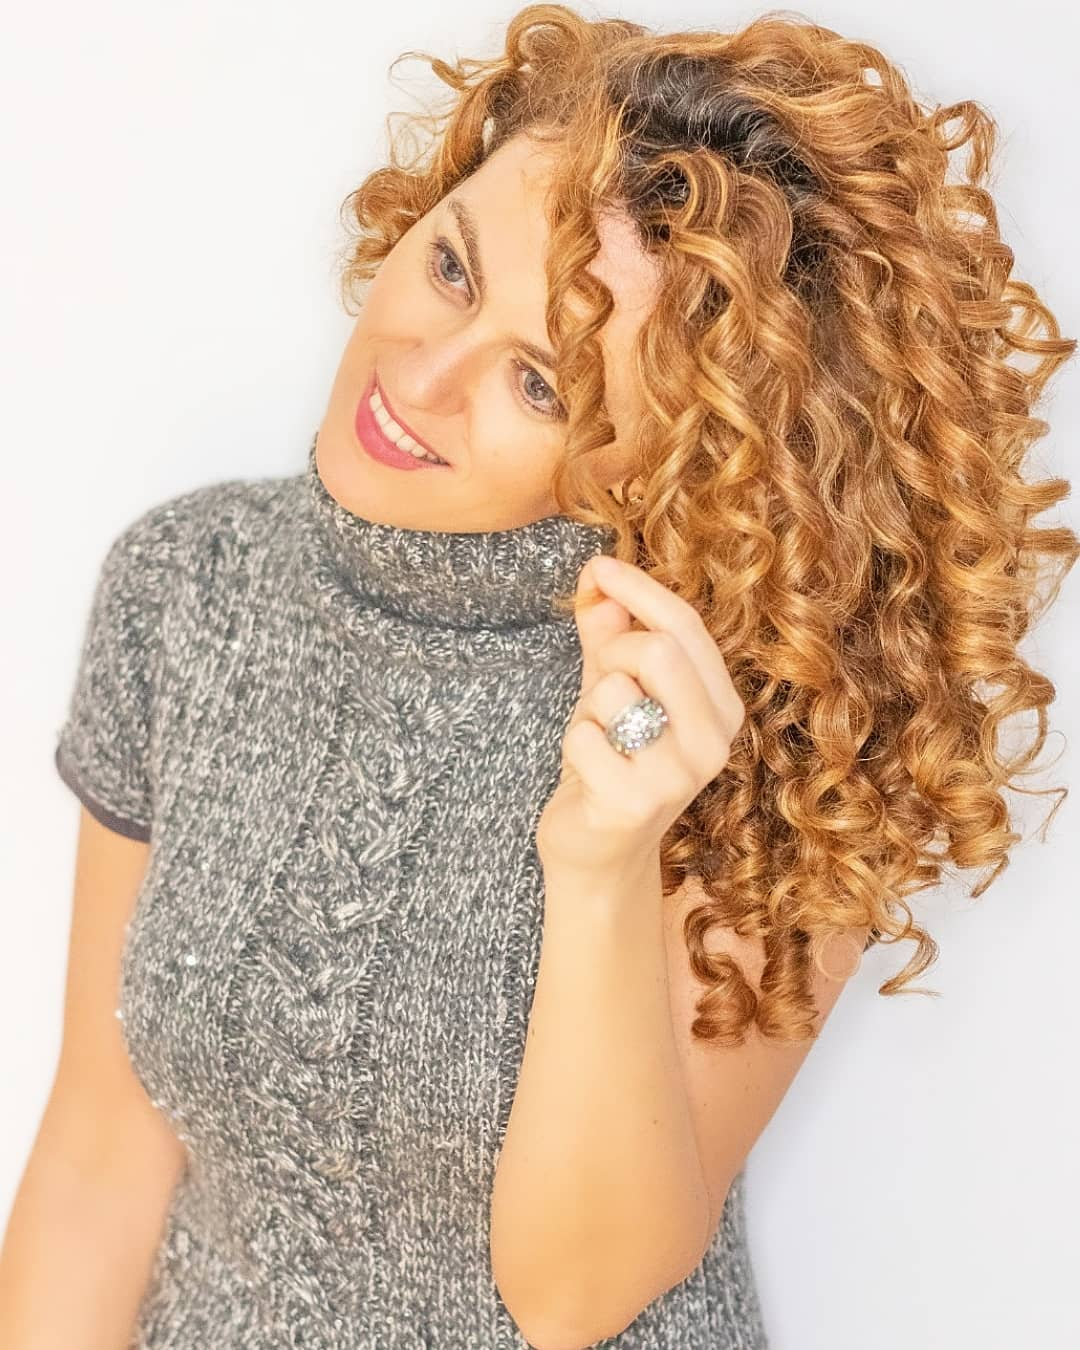 Curly Wavy Girl Hair Method Negative Effects